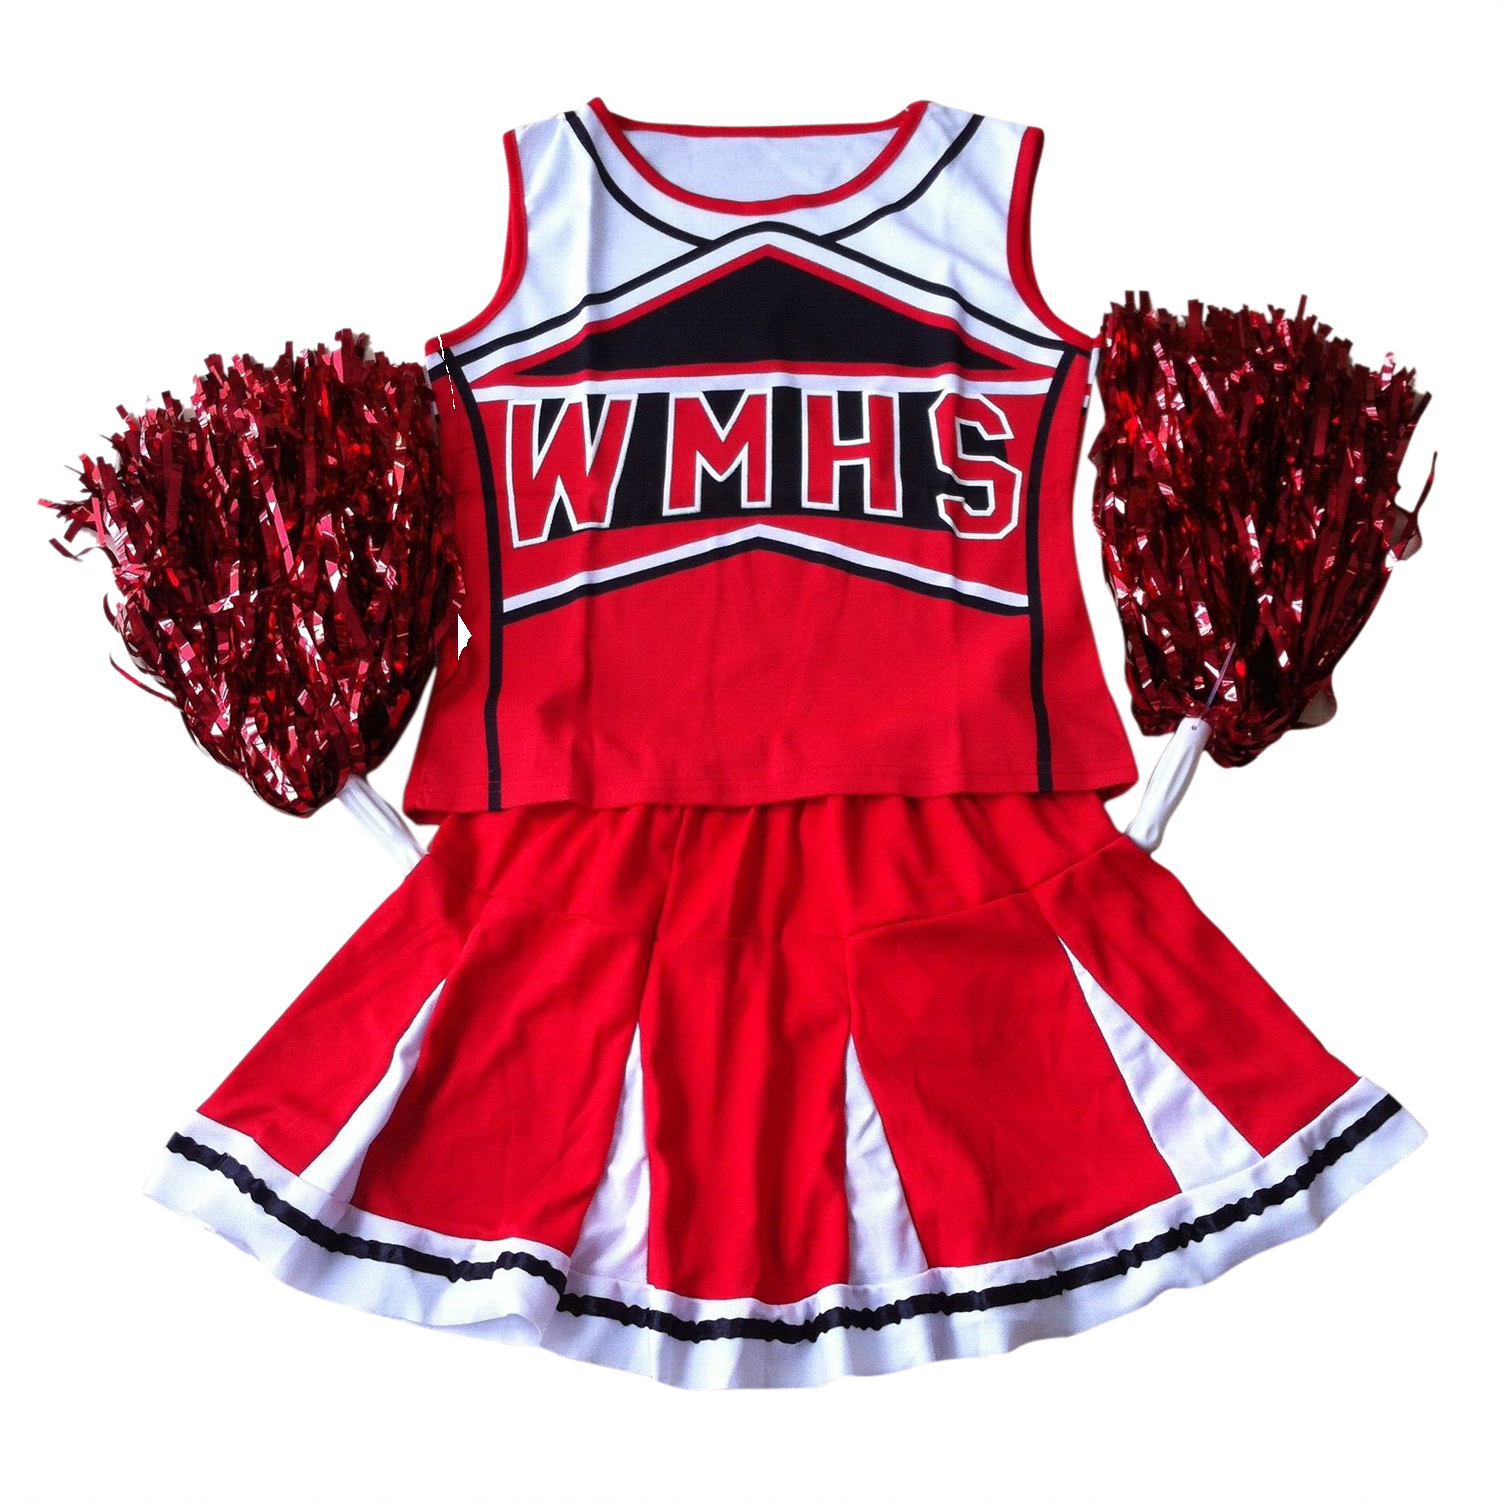 5 PCS JHO-Tank top Petticoat Pom cheerleader cheer leaders S (30-32) 2 piece suit new red costume